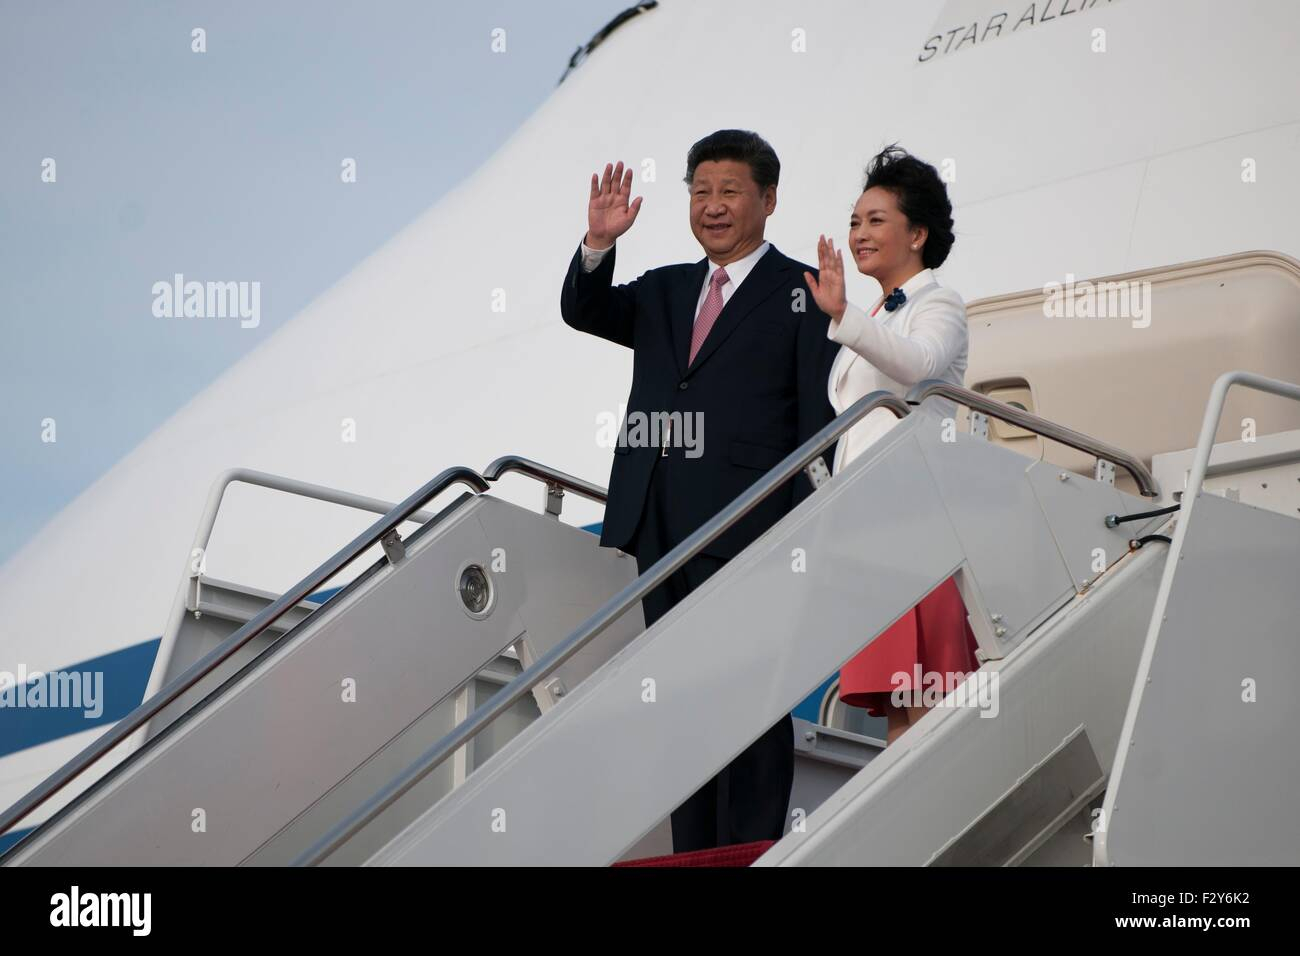 President of China Xi Jinping waves as he gets off a plane on Joint Base Andrews, Md., Sept. 24, 2015. Xi flew into - Stock Image